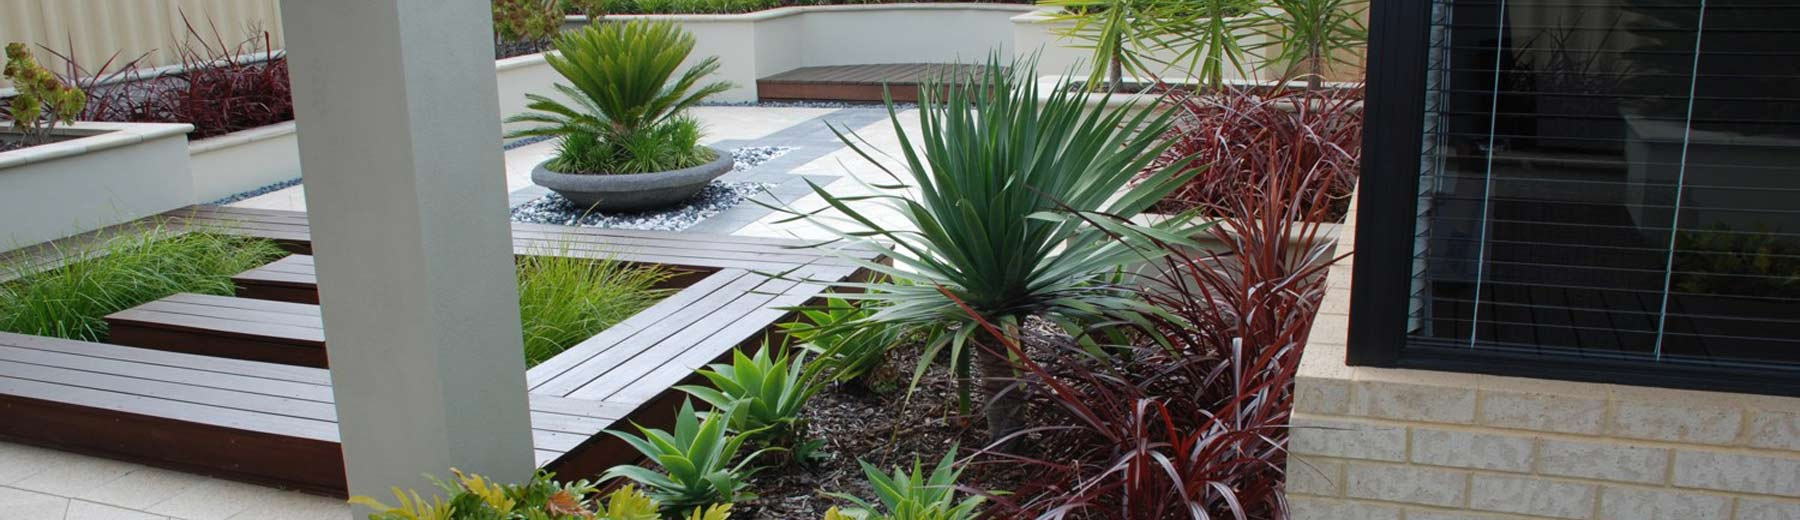 Landscape Design Jobs Sydney Of Residential Landscaping Perth Home Gardens Landscape